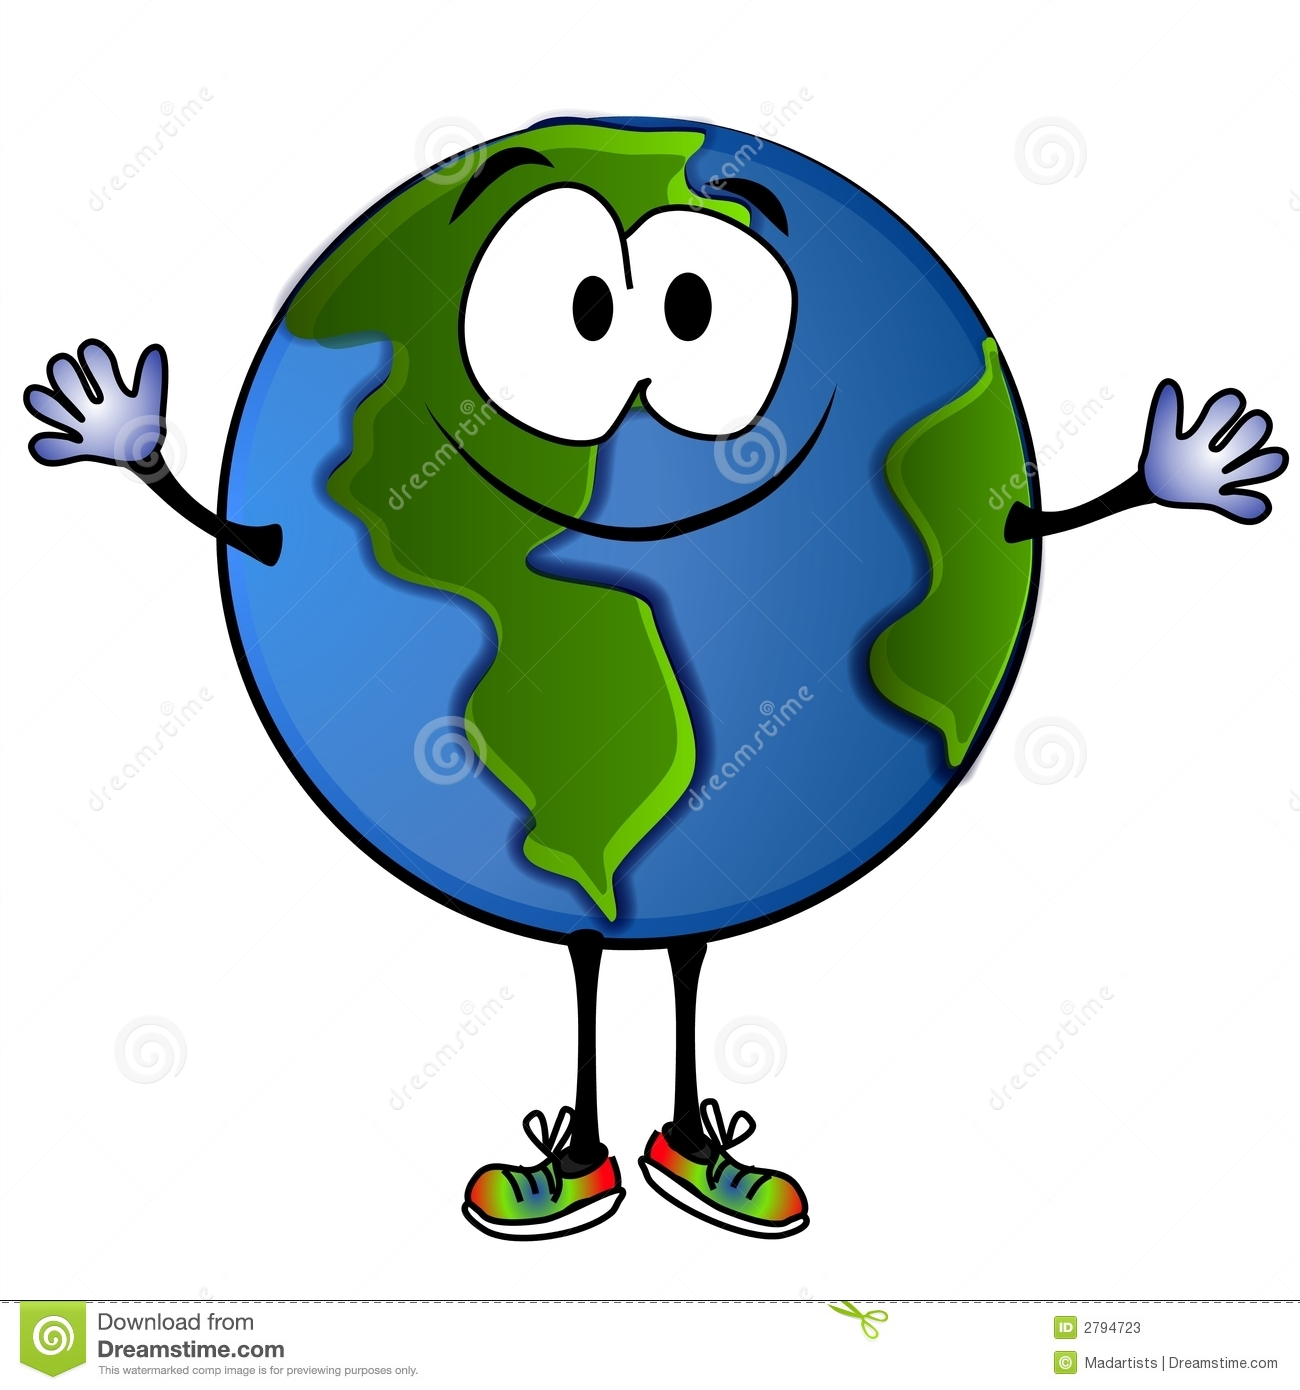 Planets clipart for kids green planet clip art image - Smiling Planet Earth Stock Photos Image 2794723